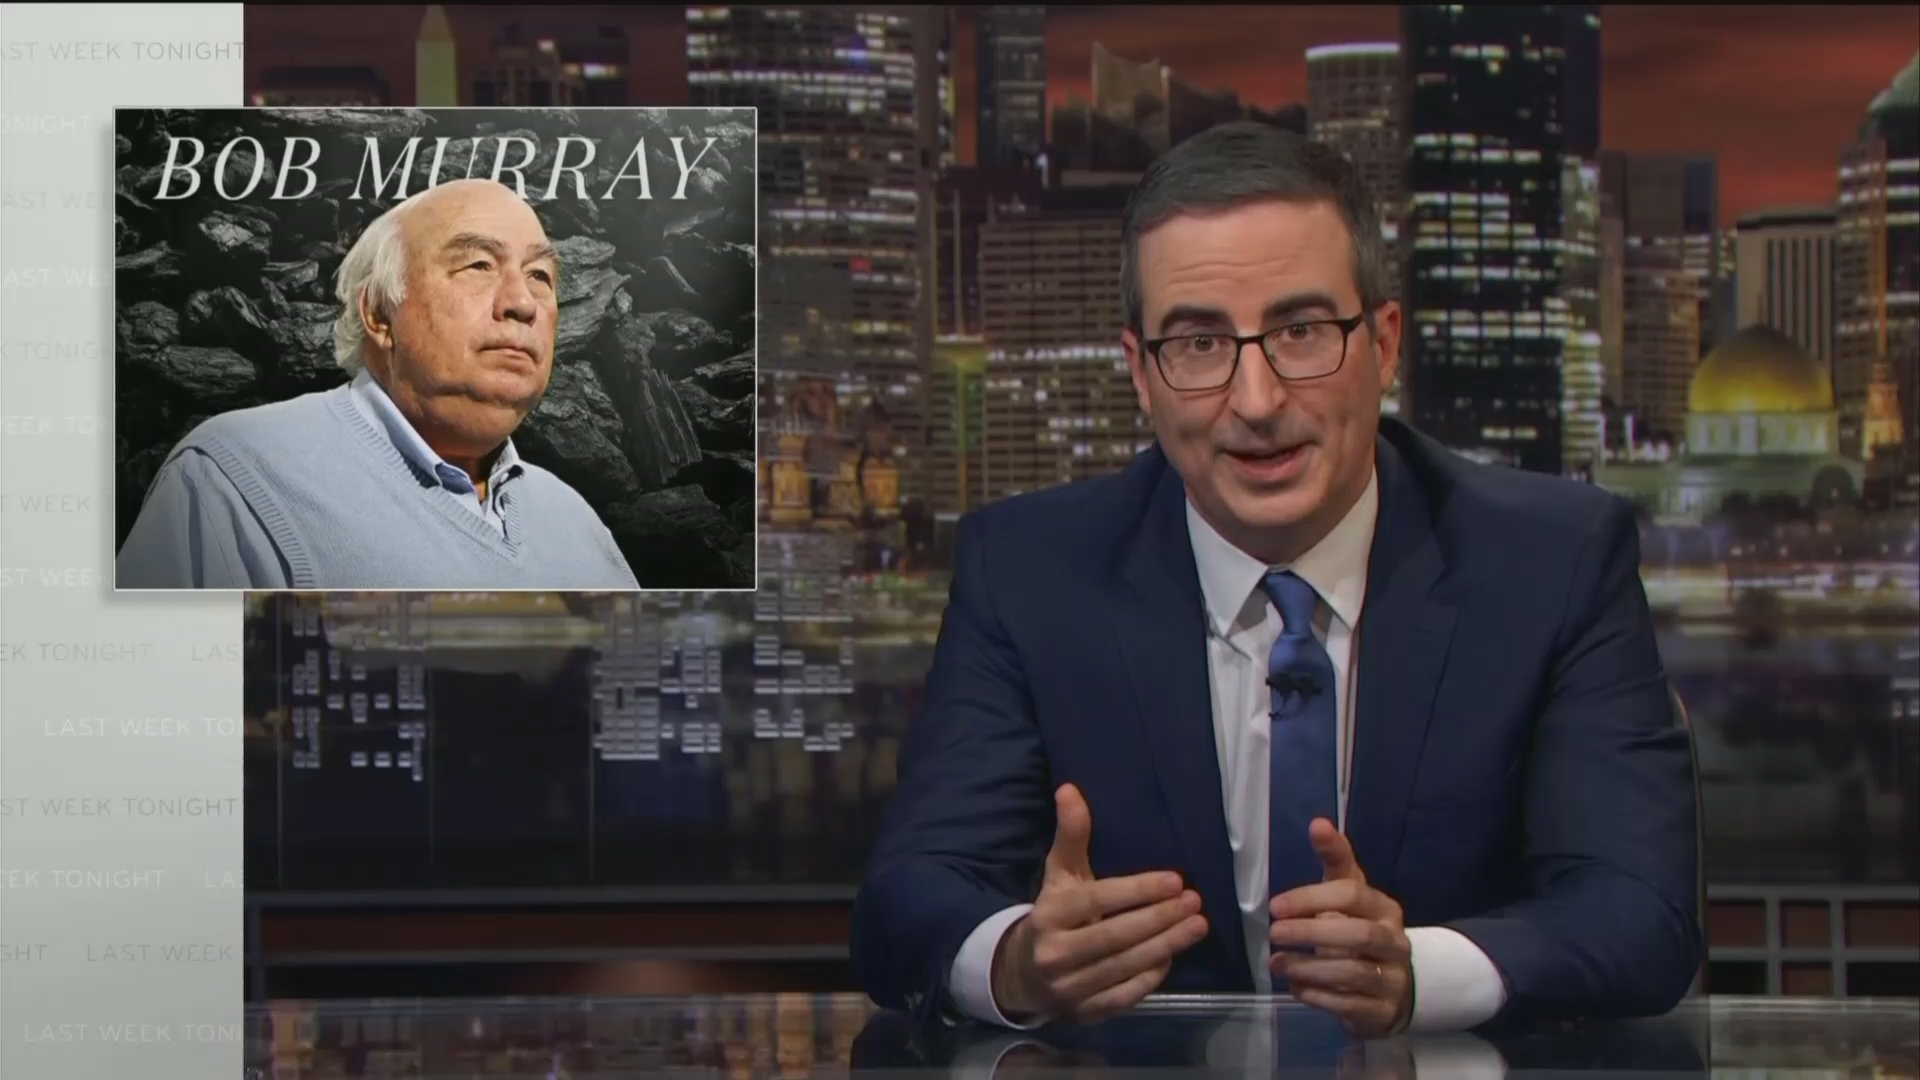 John Oliver gives background on lawsuit with Bob Murray